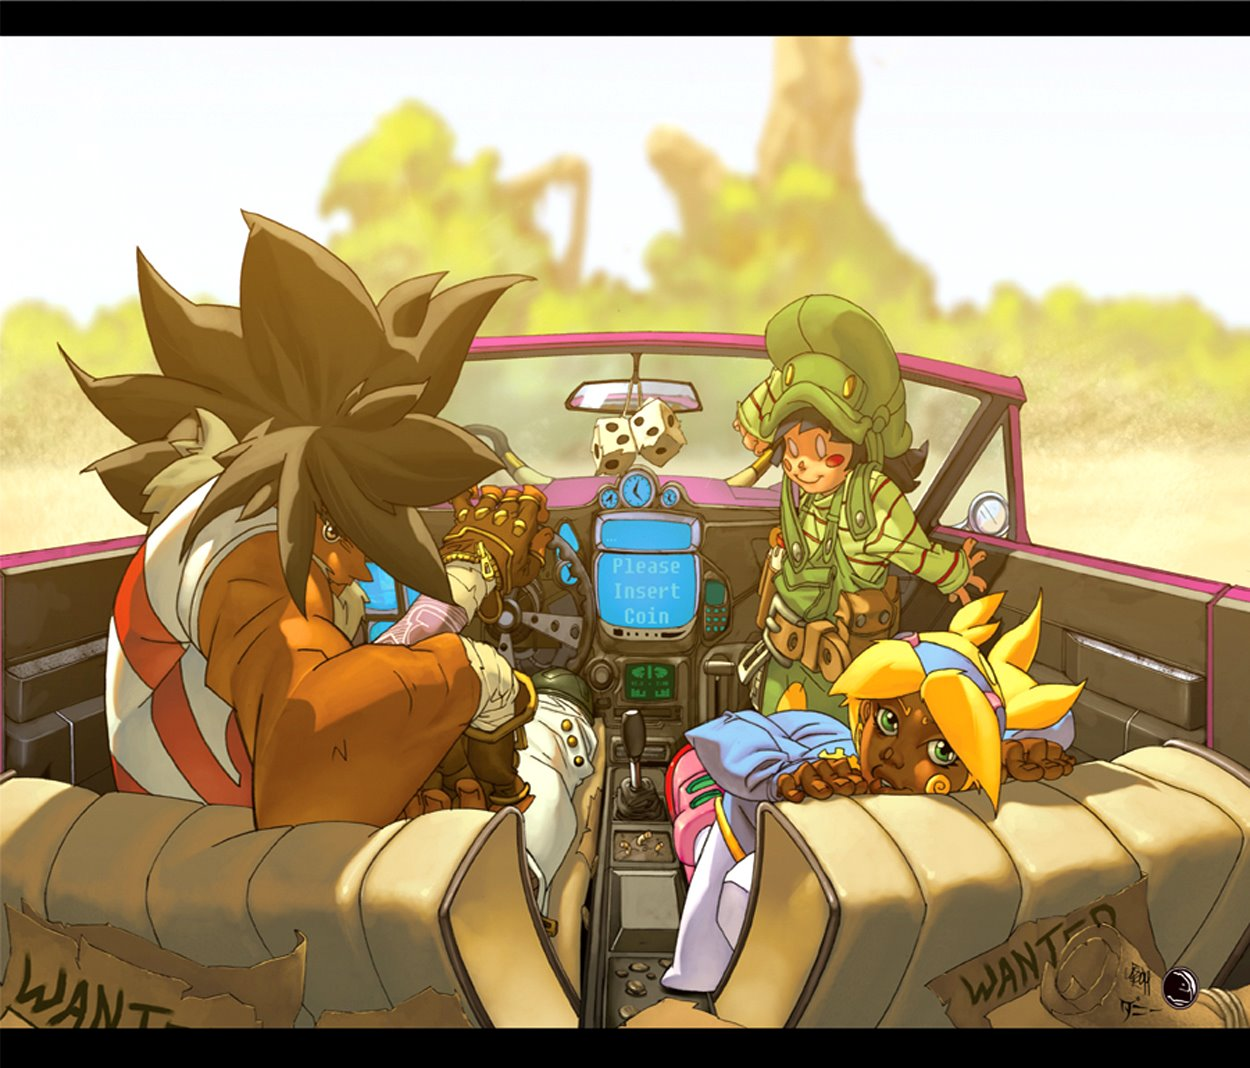 Throwback Cannon Busters 0 Cover Art Of Lesean Thomas